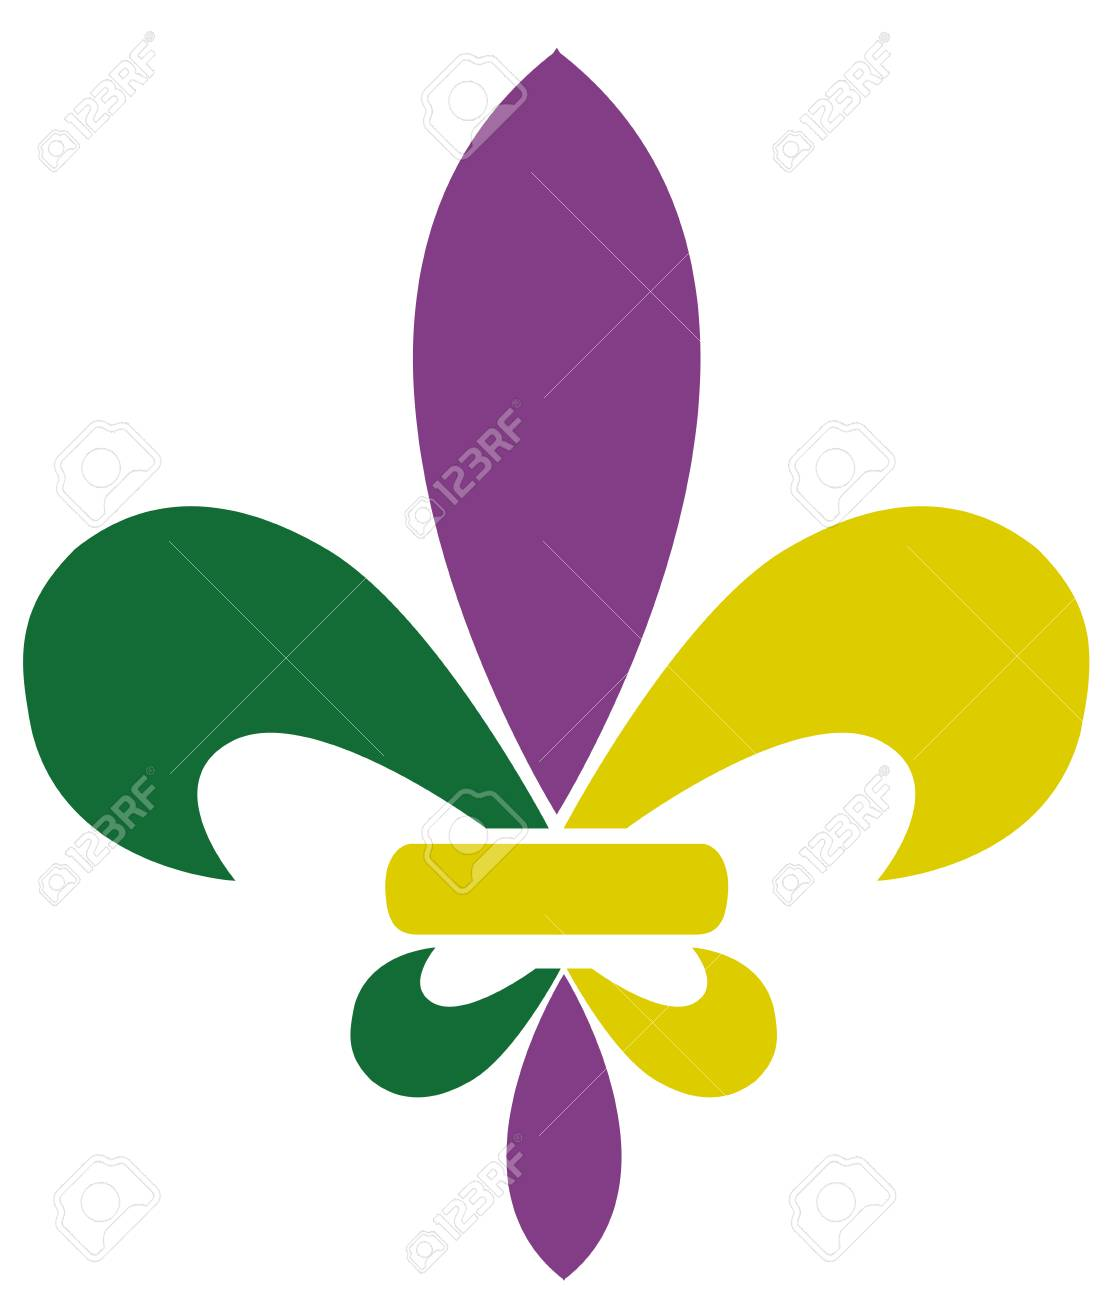 hight resolution of vector vector illustration of mardi gras fleur de lis